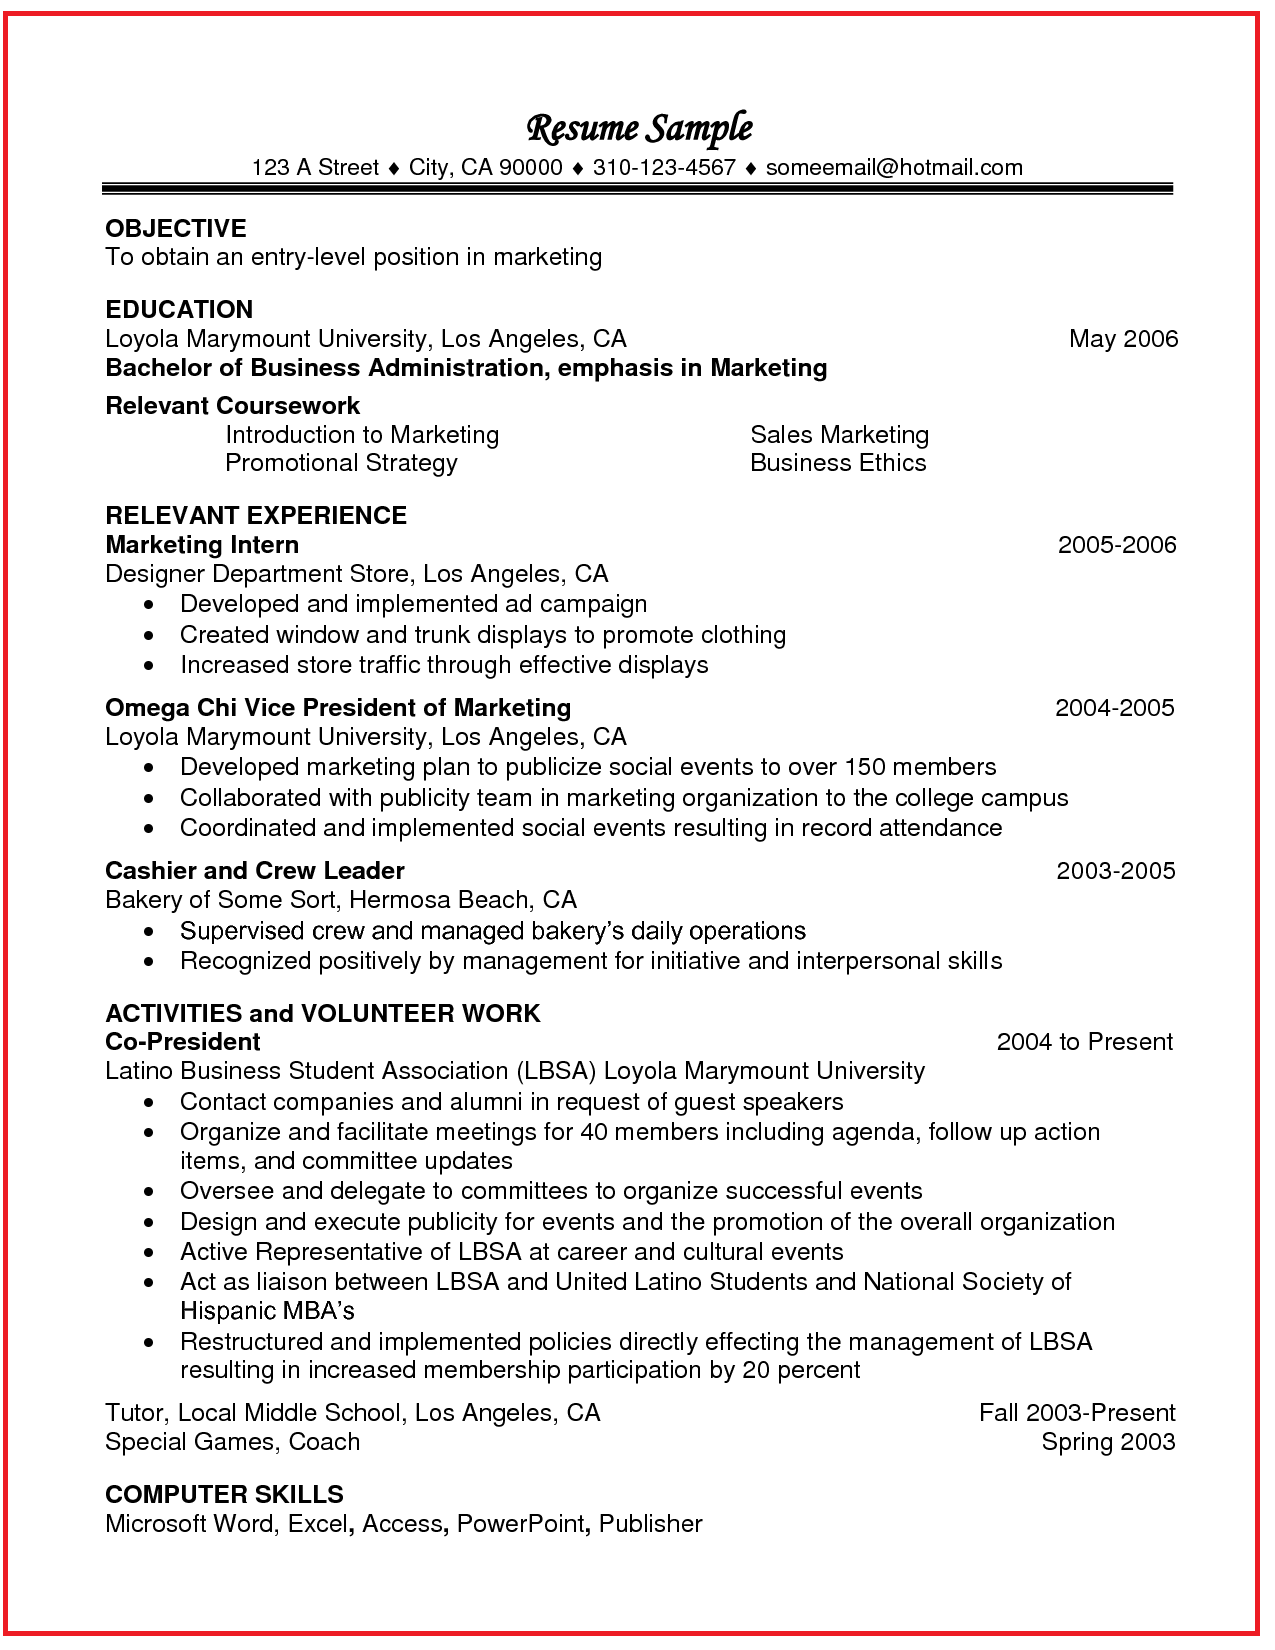 Resume Format Microsoft Word Beauteous Relevant Coursework In Resume Example  Httpwwwjobresume Review